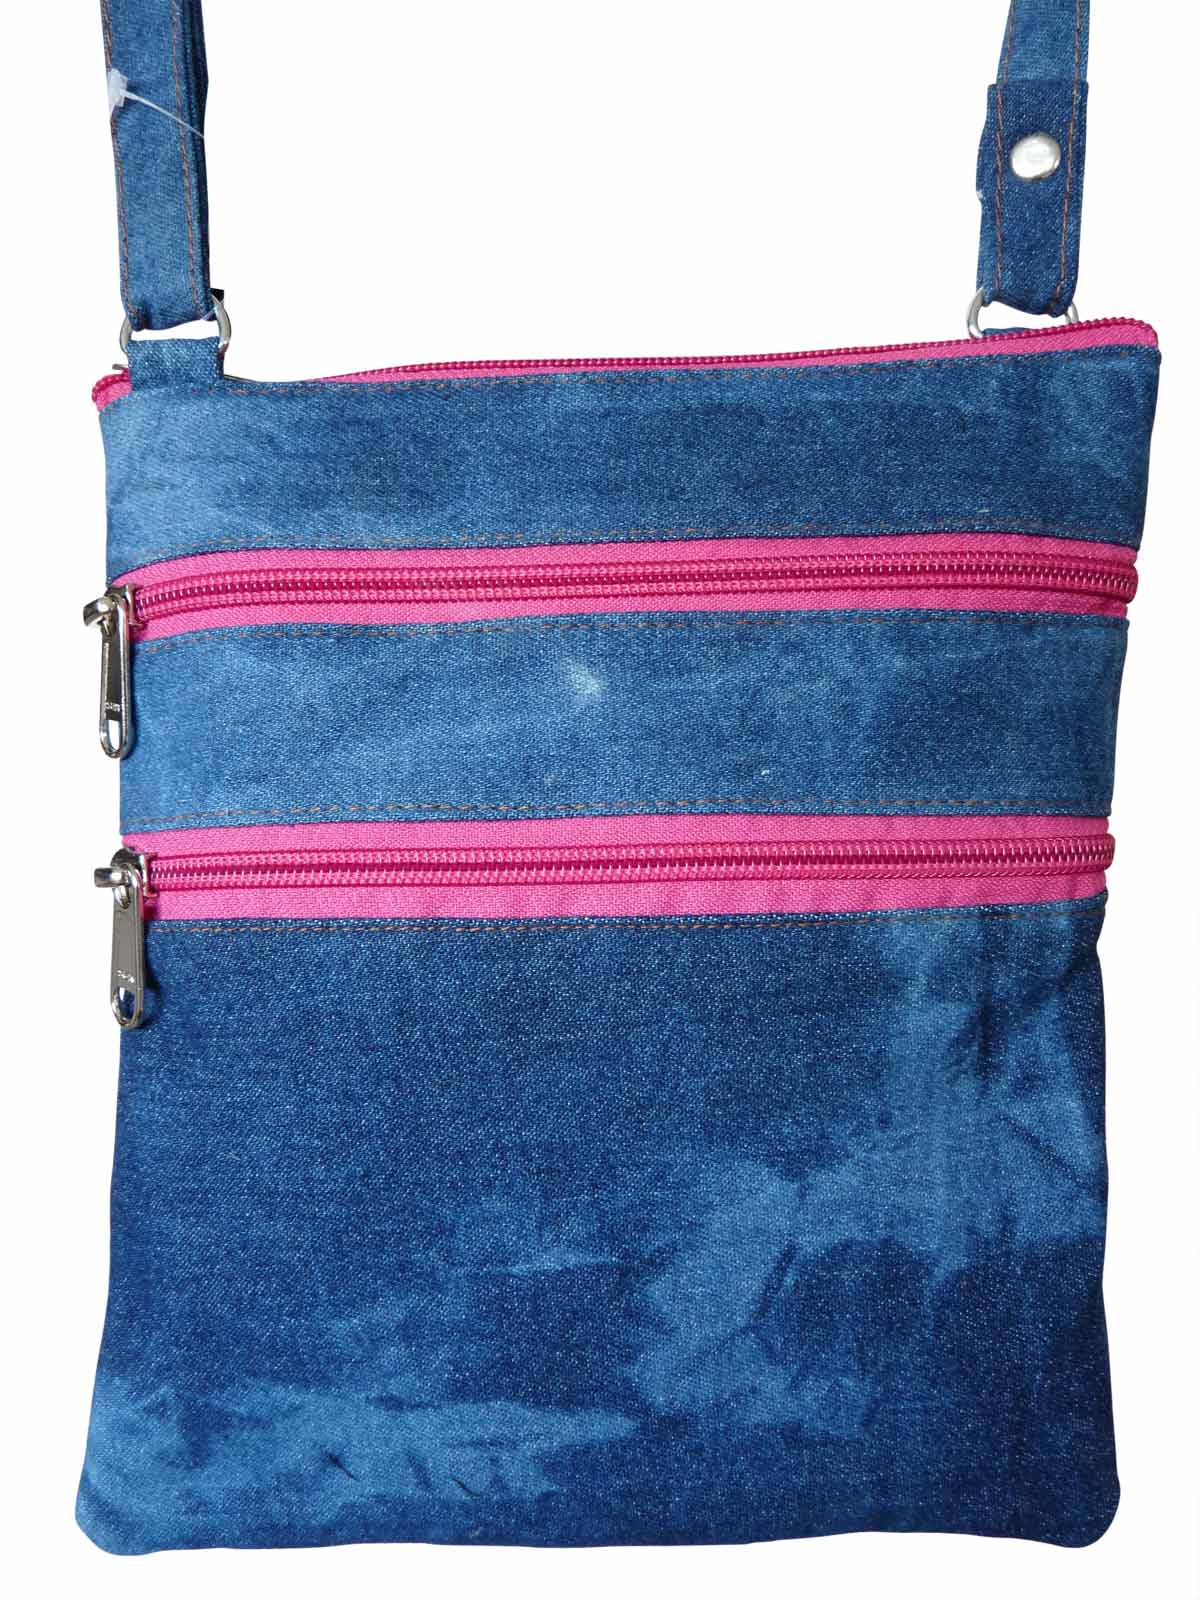 Denim Travel Pouch Pink Zips RL178DPZ